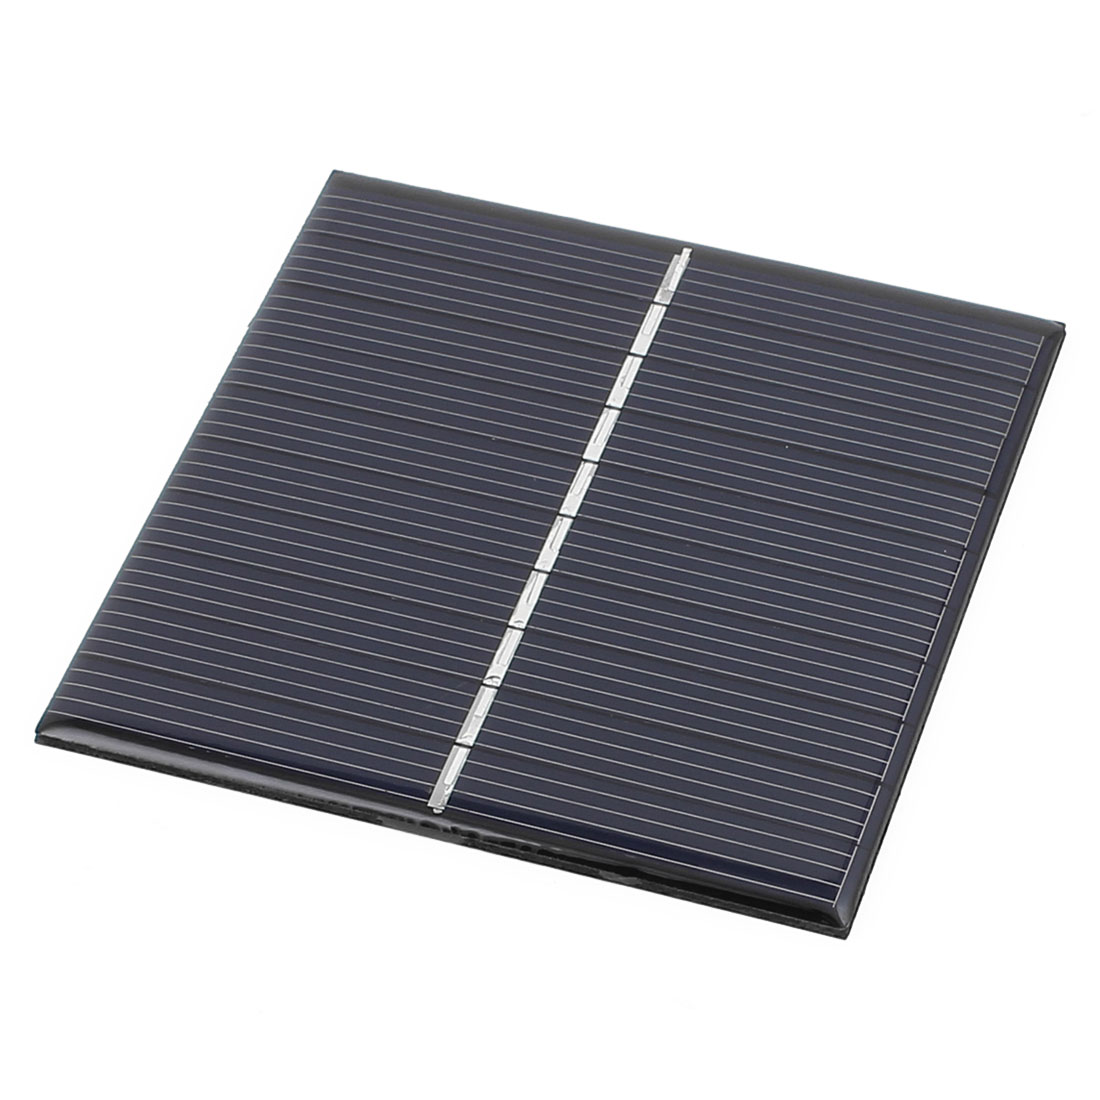 5V 0.8W DIY Polycrystallinesilicon Solar Panel Power Cell Battery Charger 80mm x 80mm